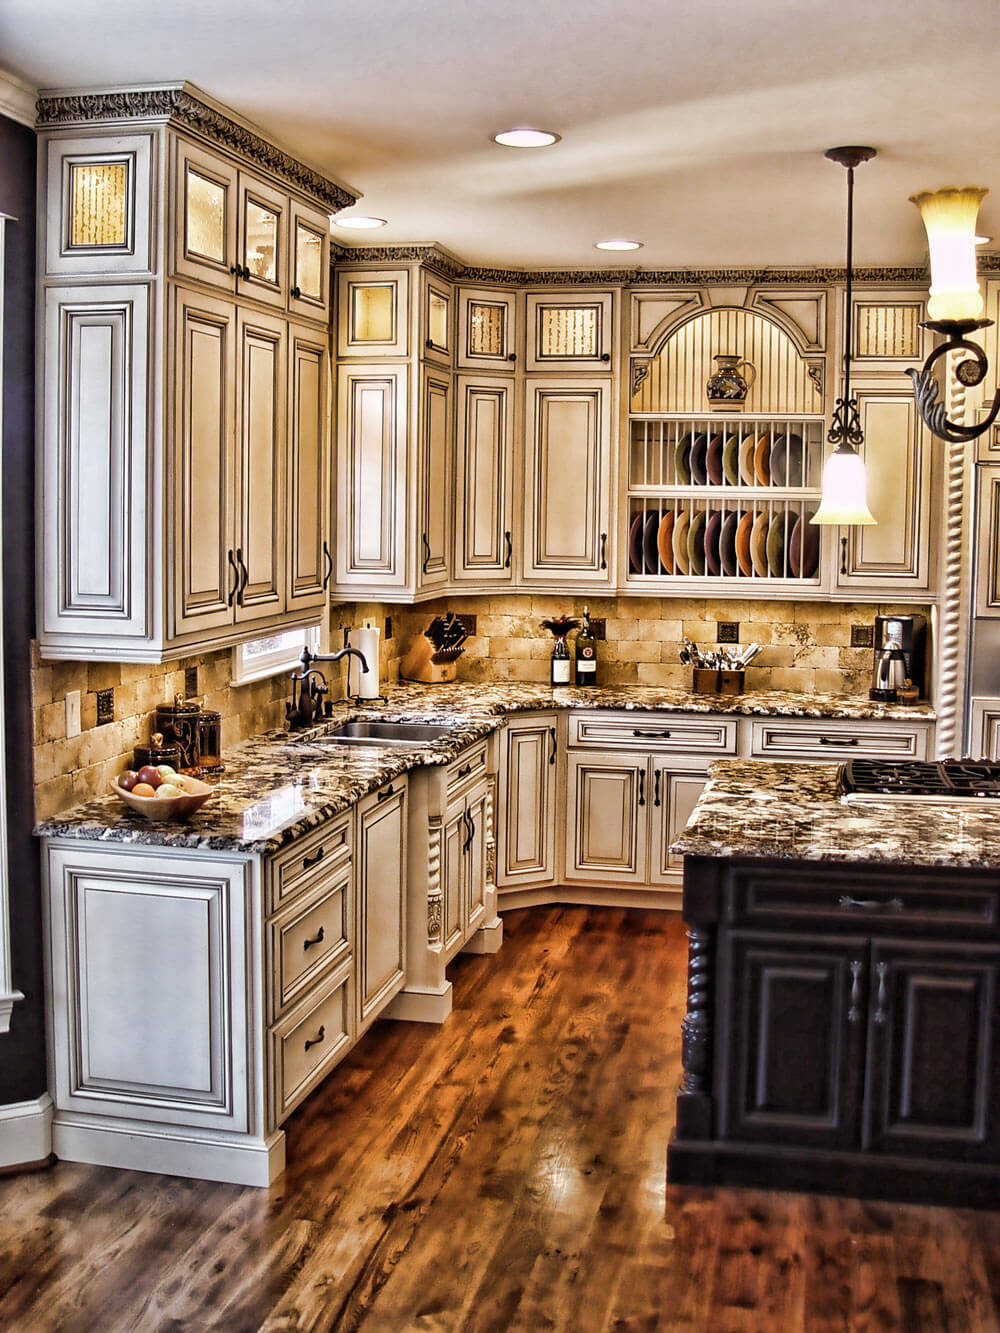 best rustic kitchen cabinets ideas rustic kitchen ideas Maison Chic Rustic Kitchen Cabinet Designs